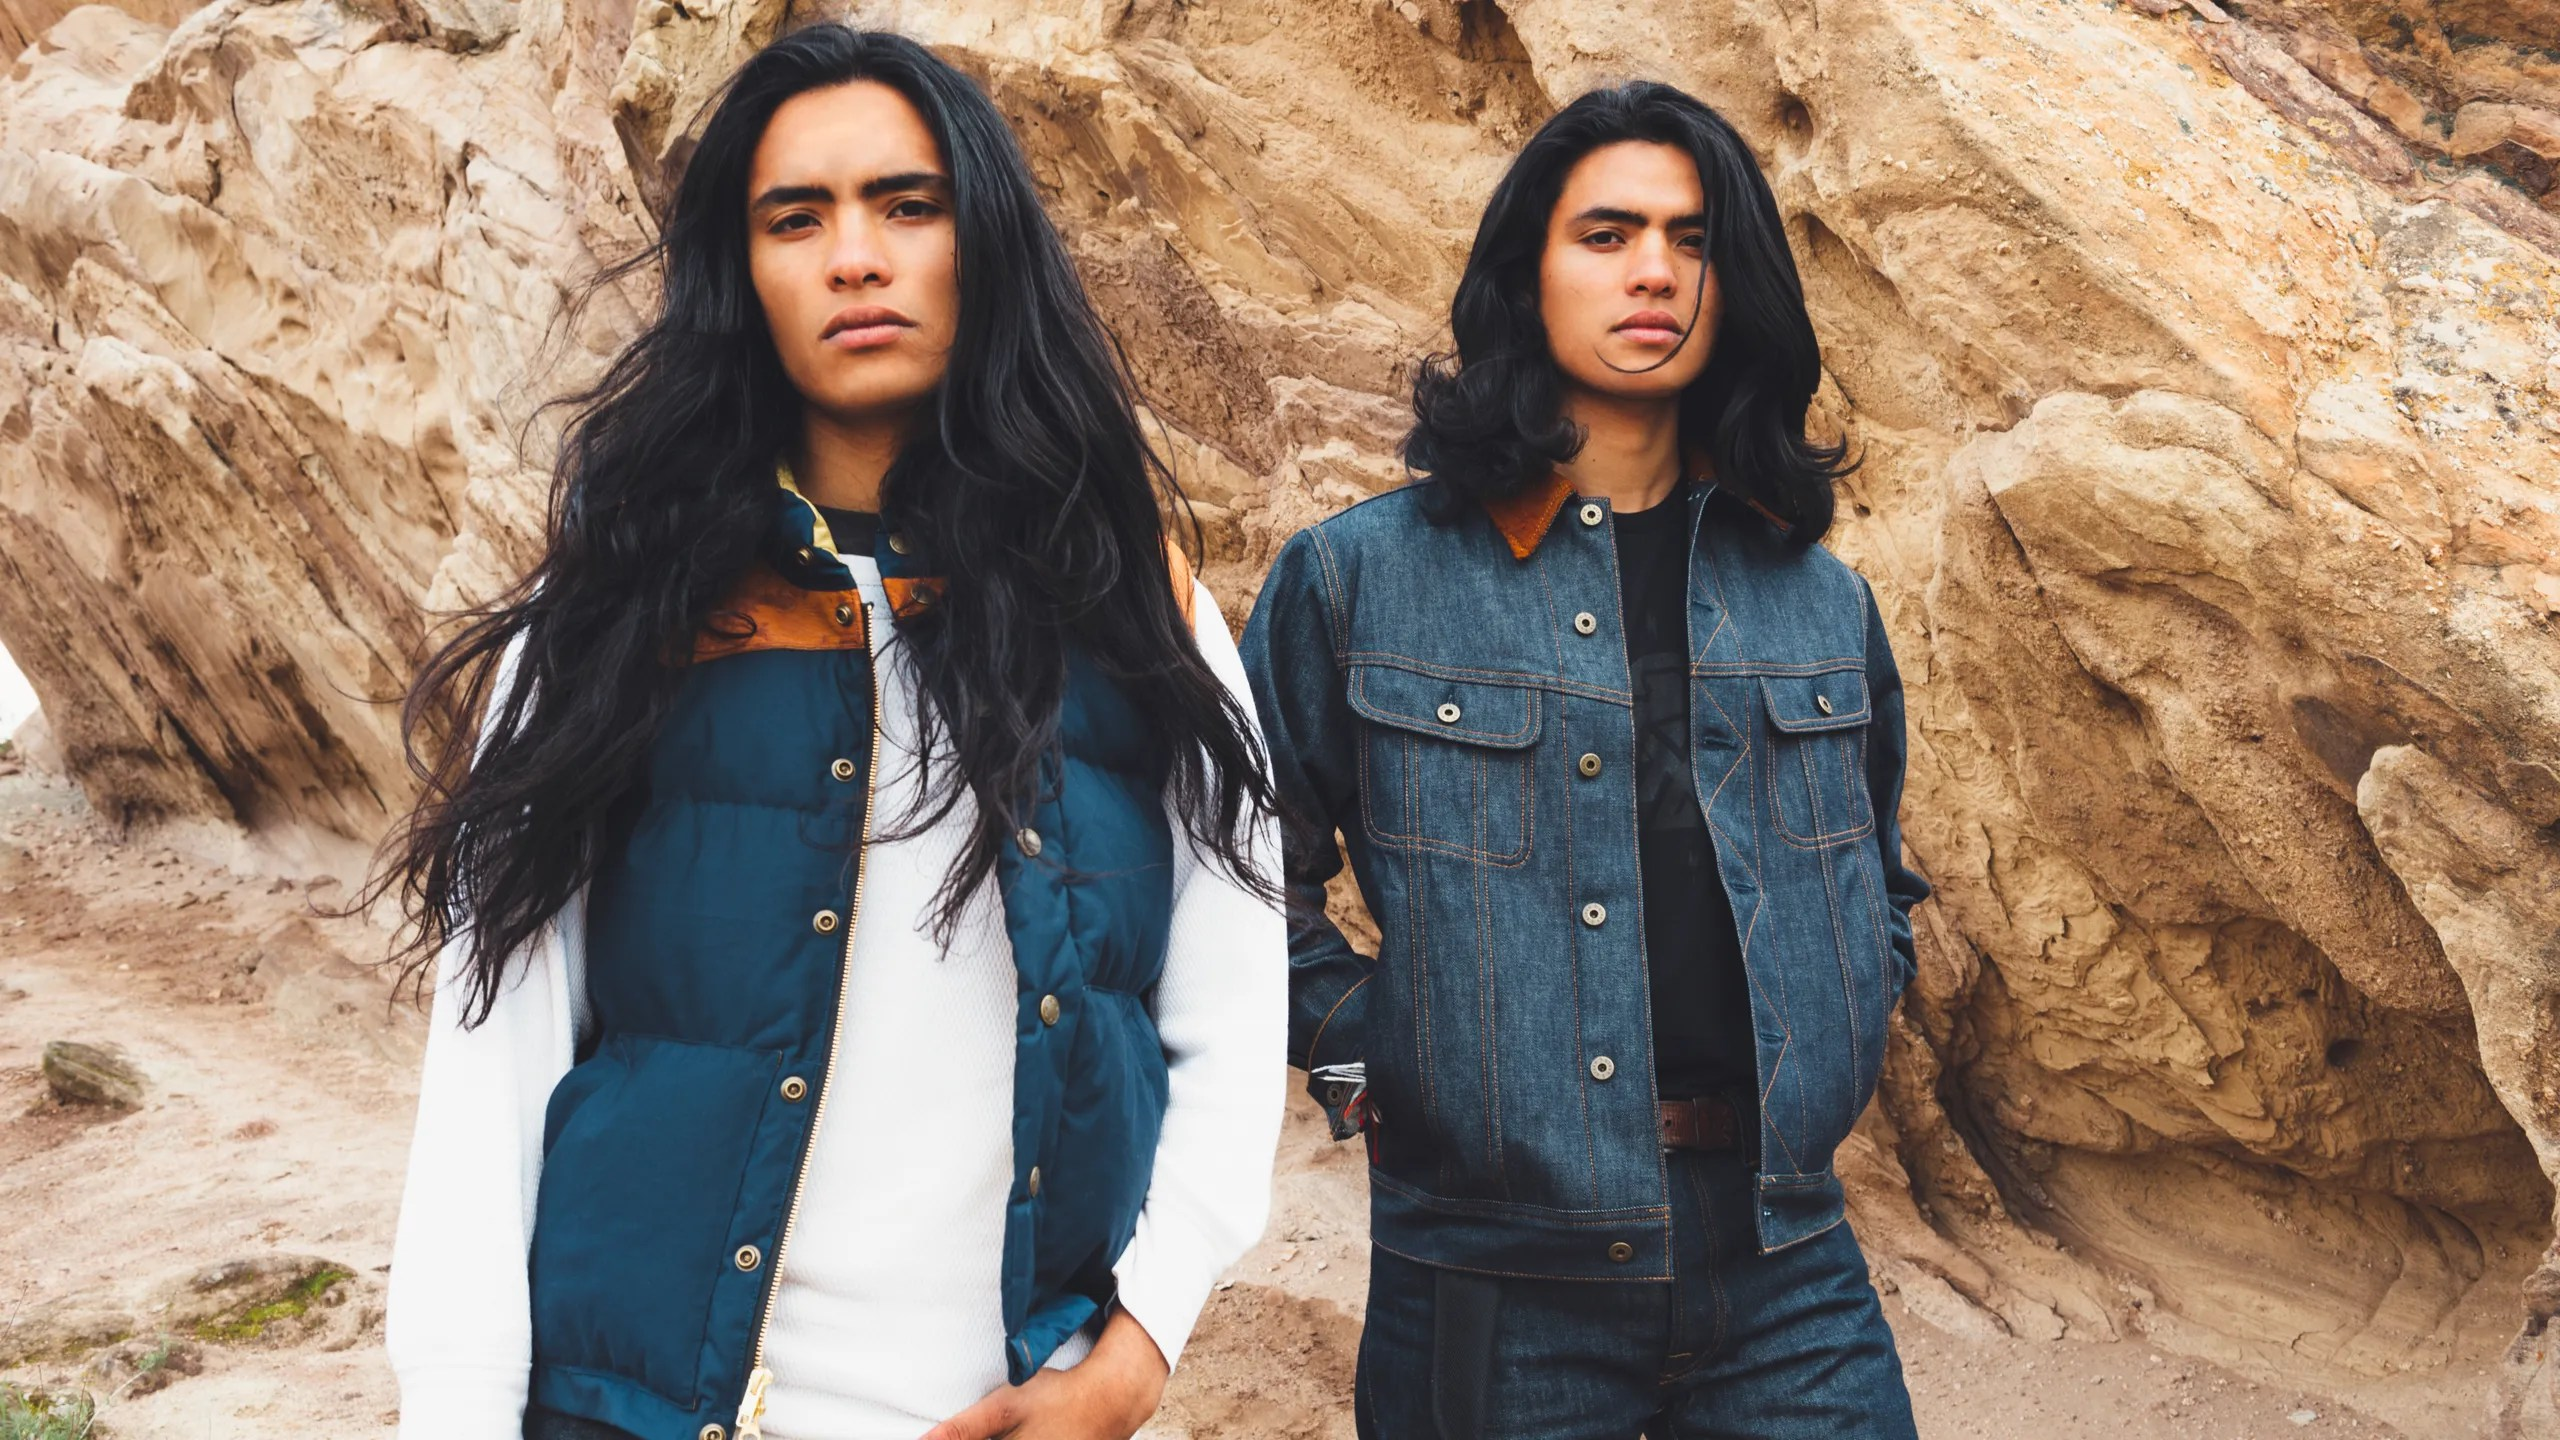 The Native American Designers Behind Ginew Are Redefining